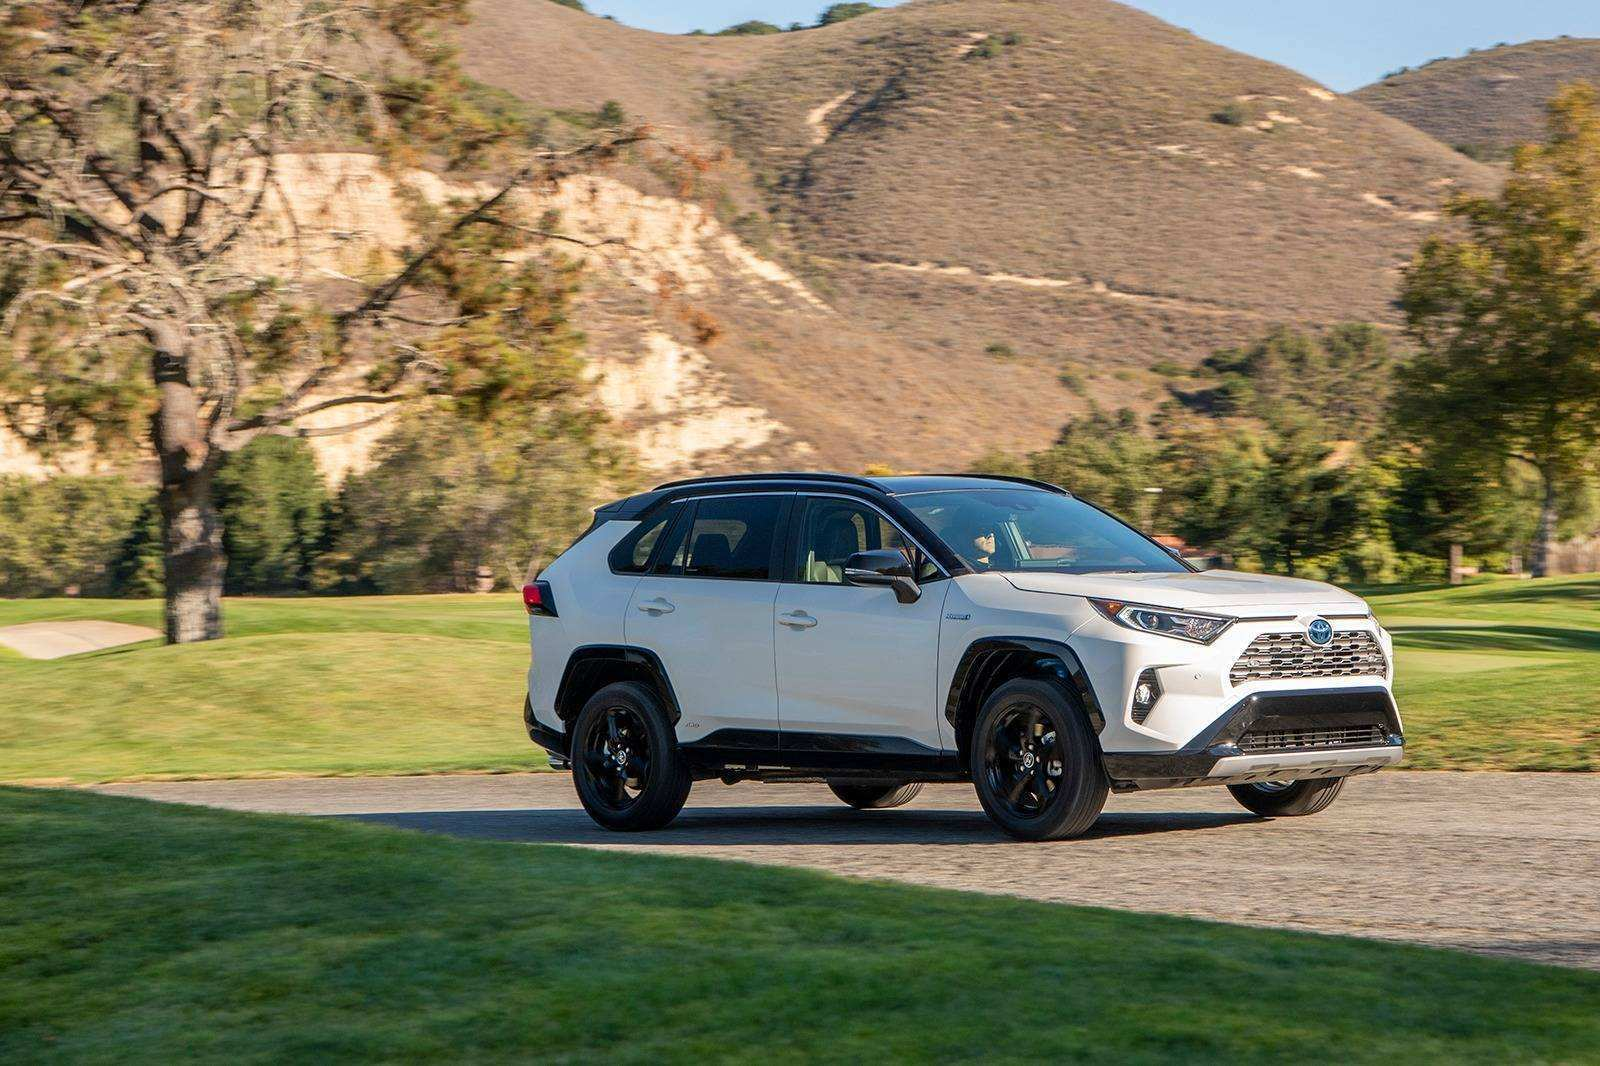 62 Best Review 2019 Toyota Rav4 Hybrid Specs and Review with 2019 Toyota Rav4 Hybrid